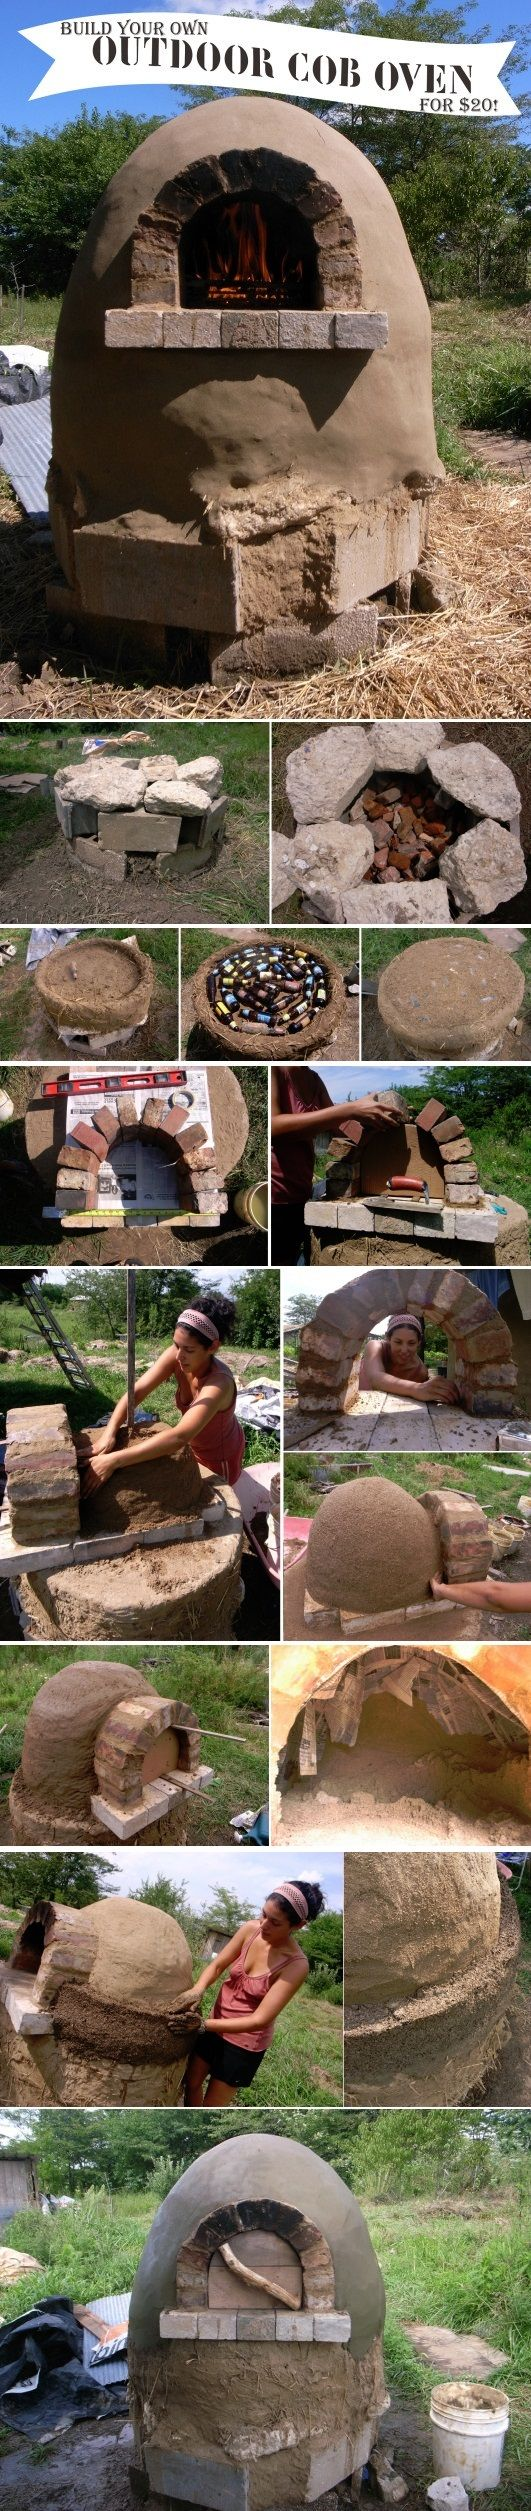 How To Build An Outdoor Cob Oven For